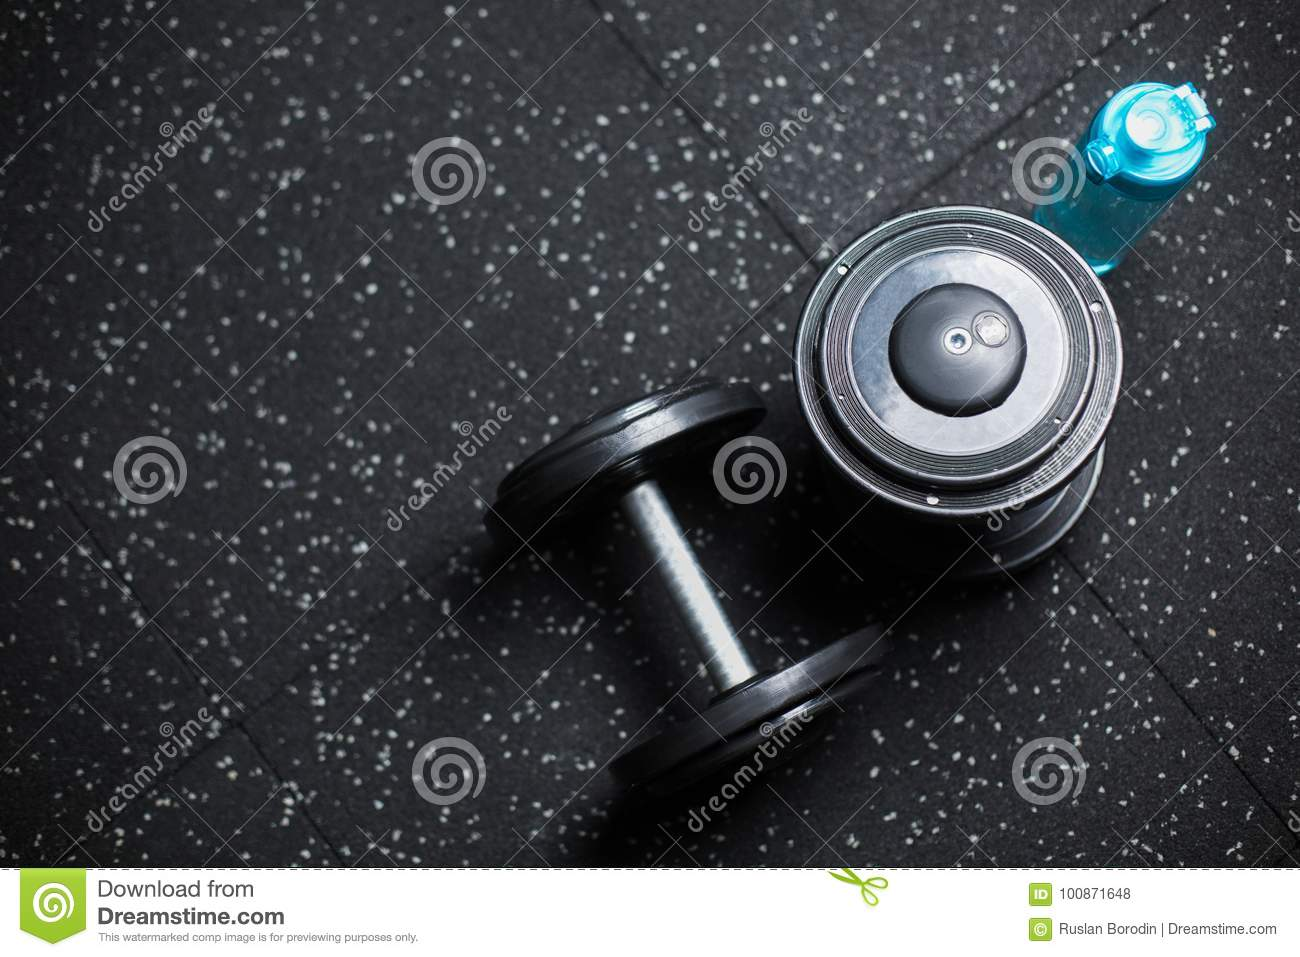 Top View Of Two Metal Dumbbells And A Bottle For Water, Equipment